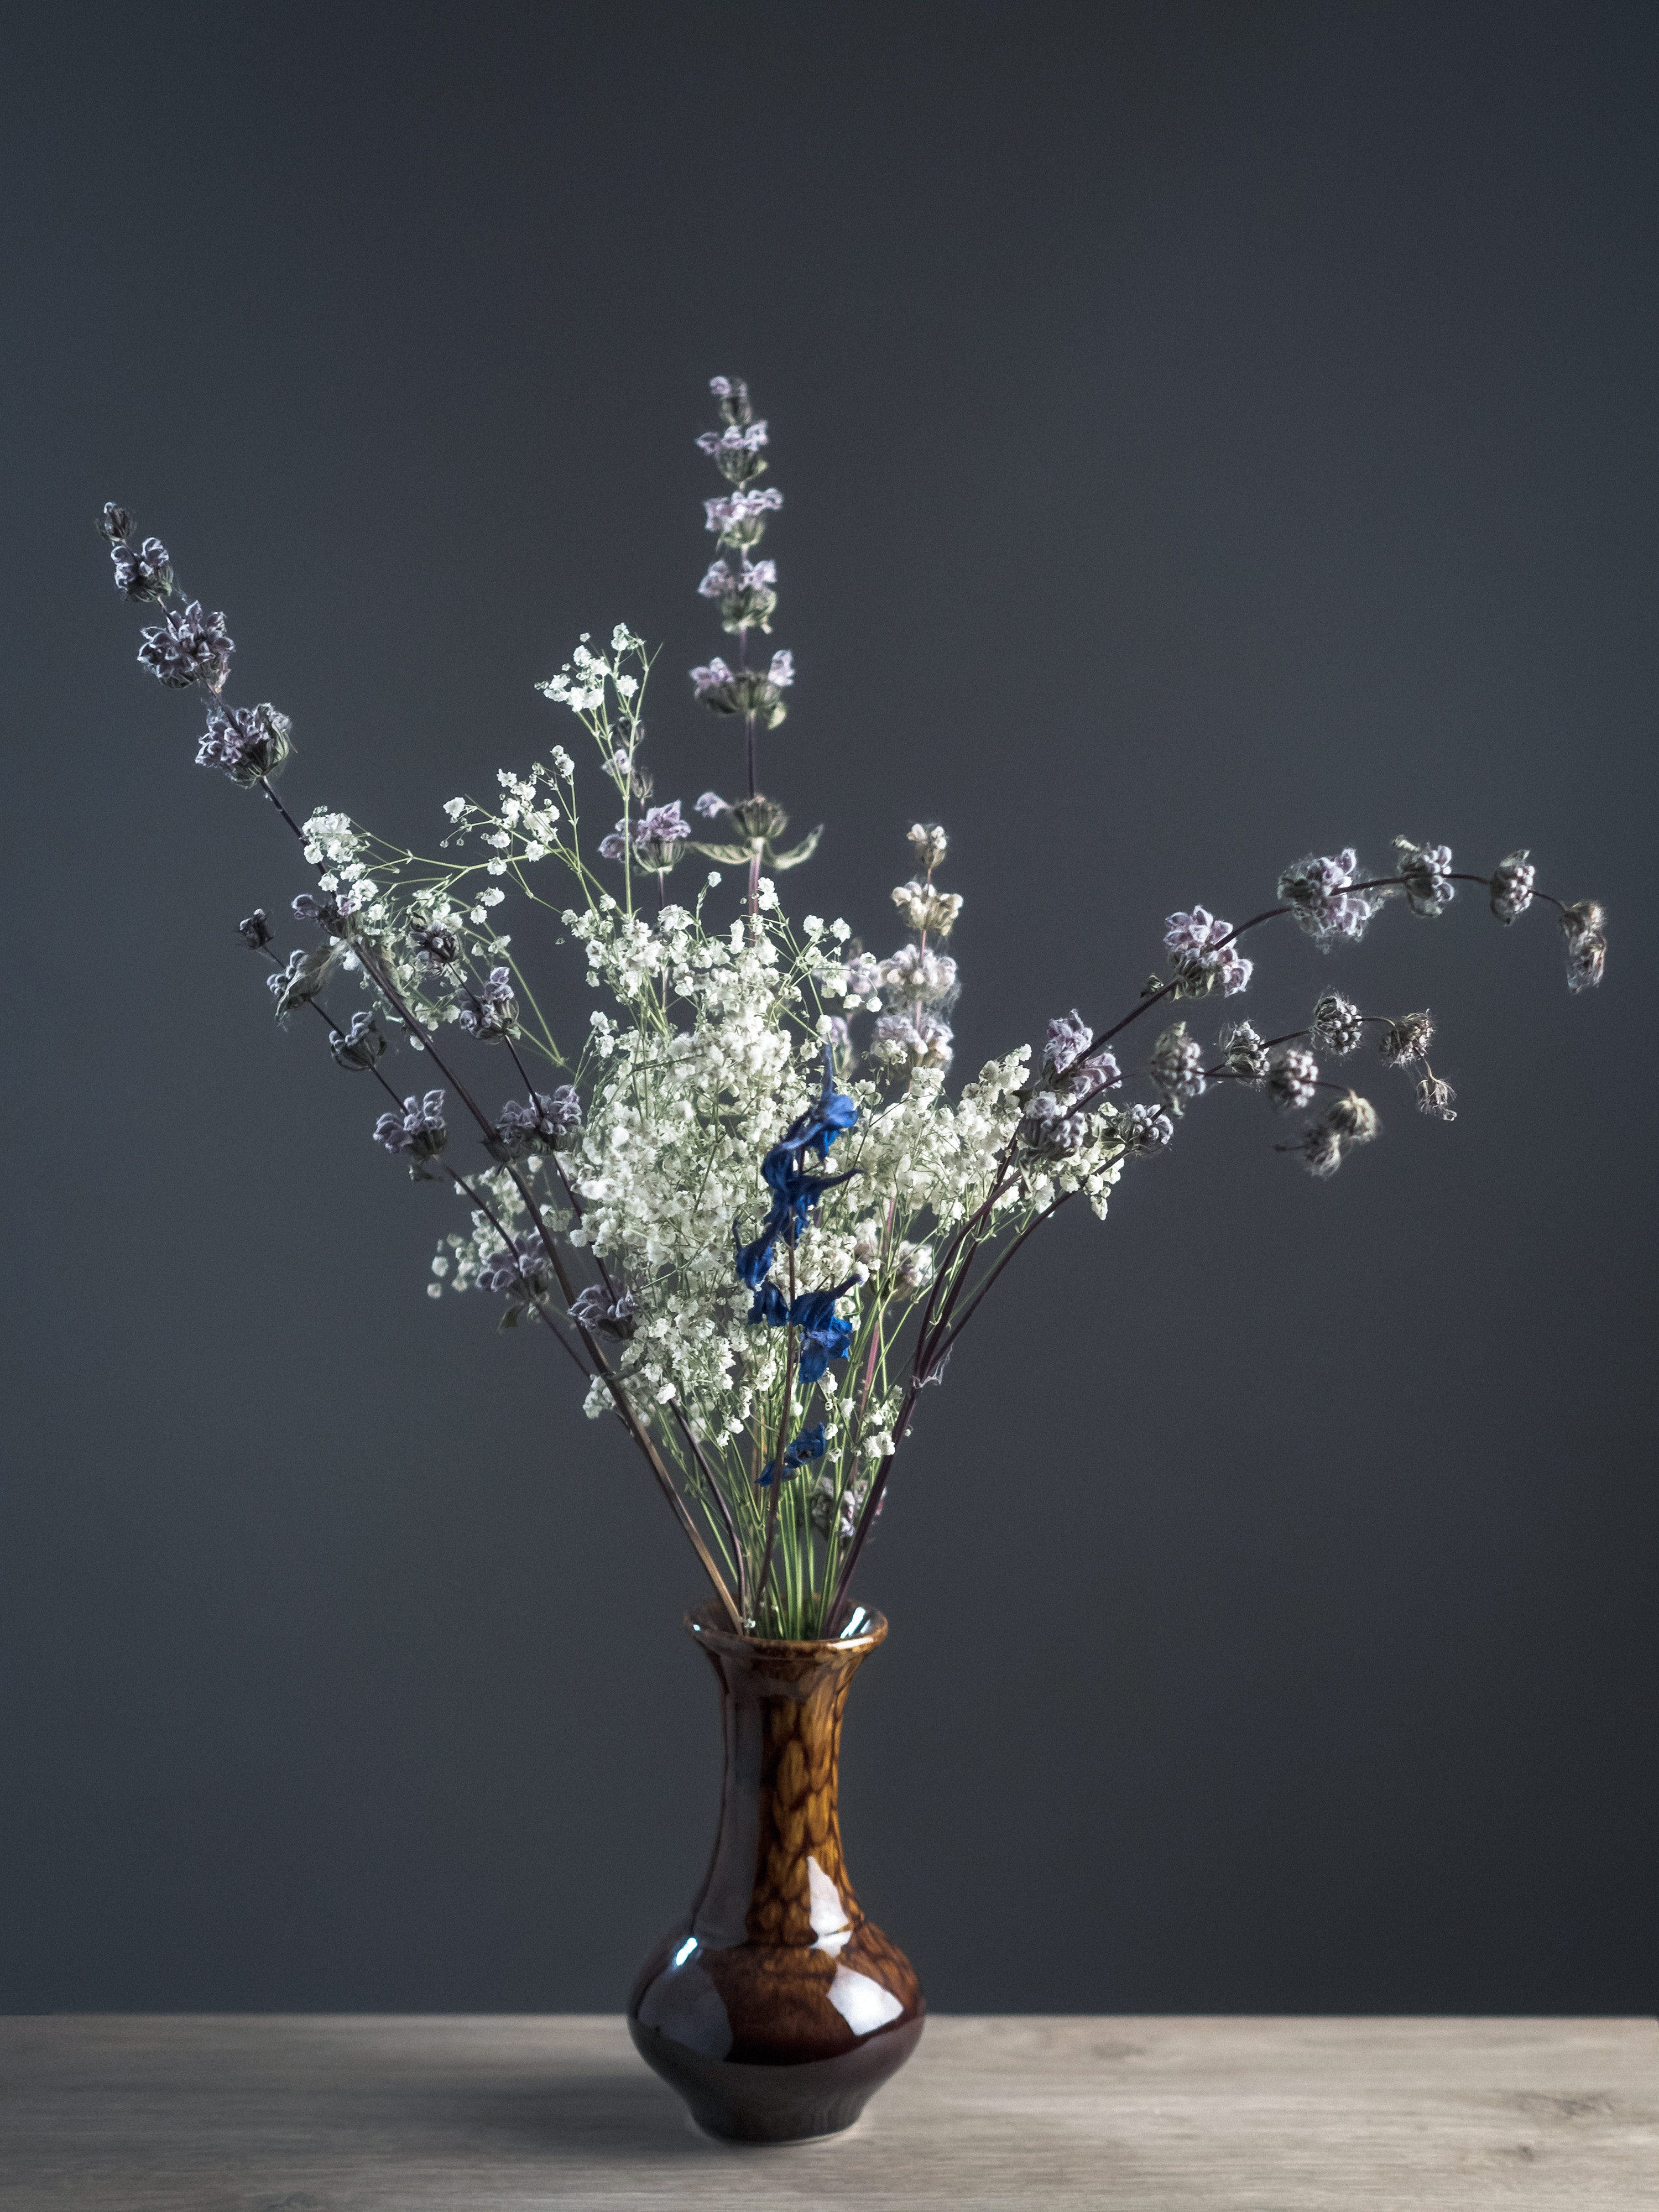 Shallow Focus Photography of White and Gray Flowers in Brown Ceramic Vase